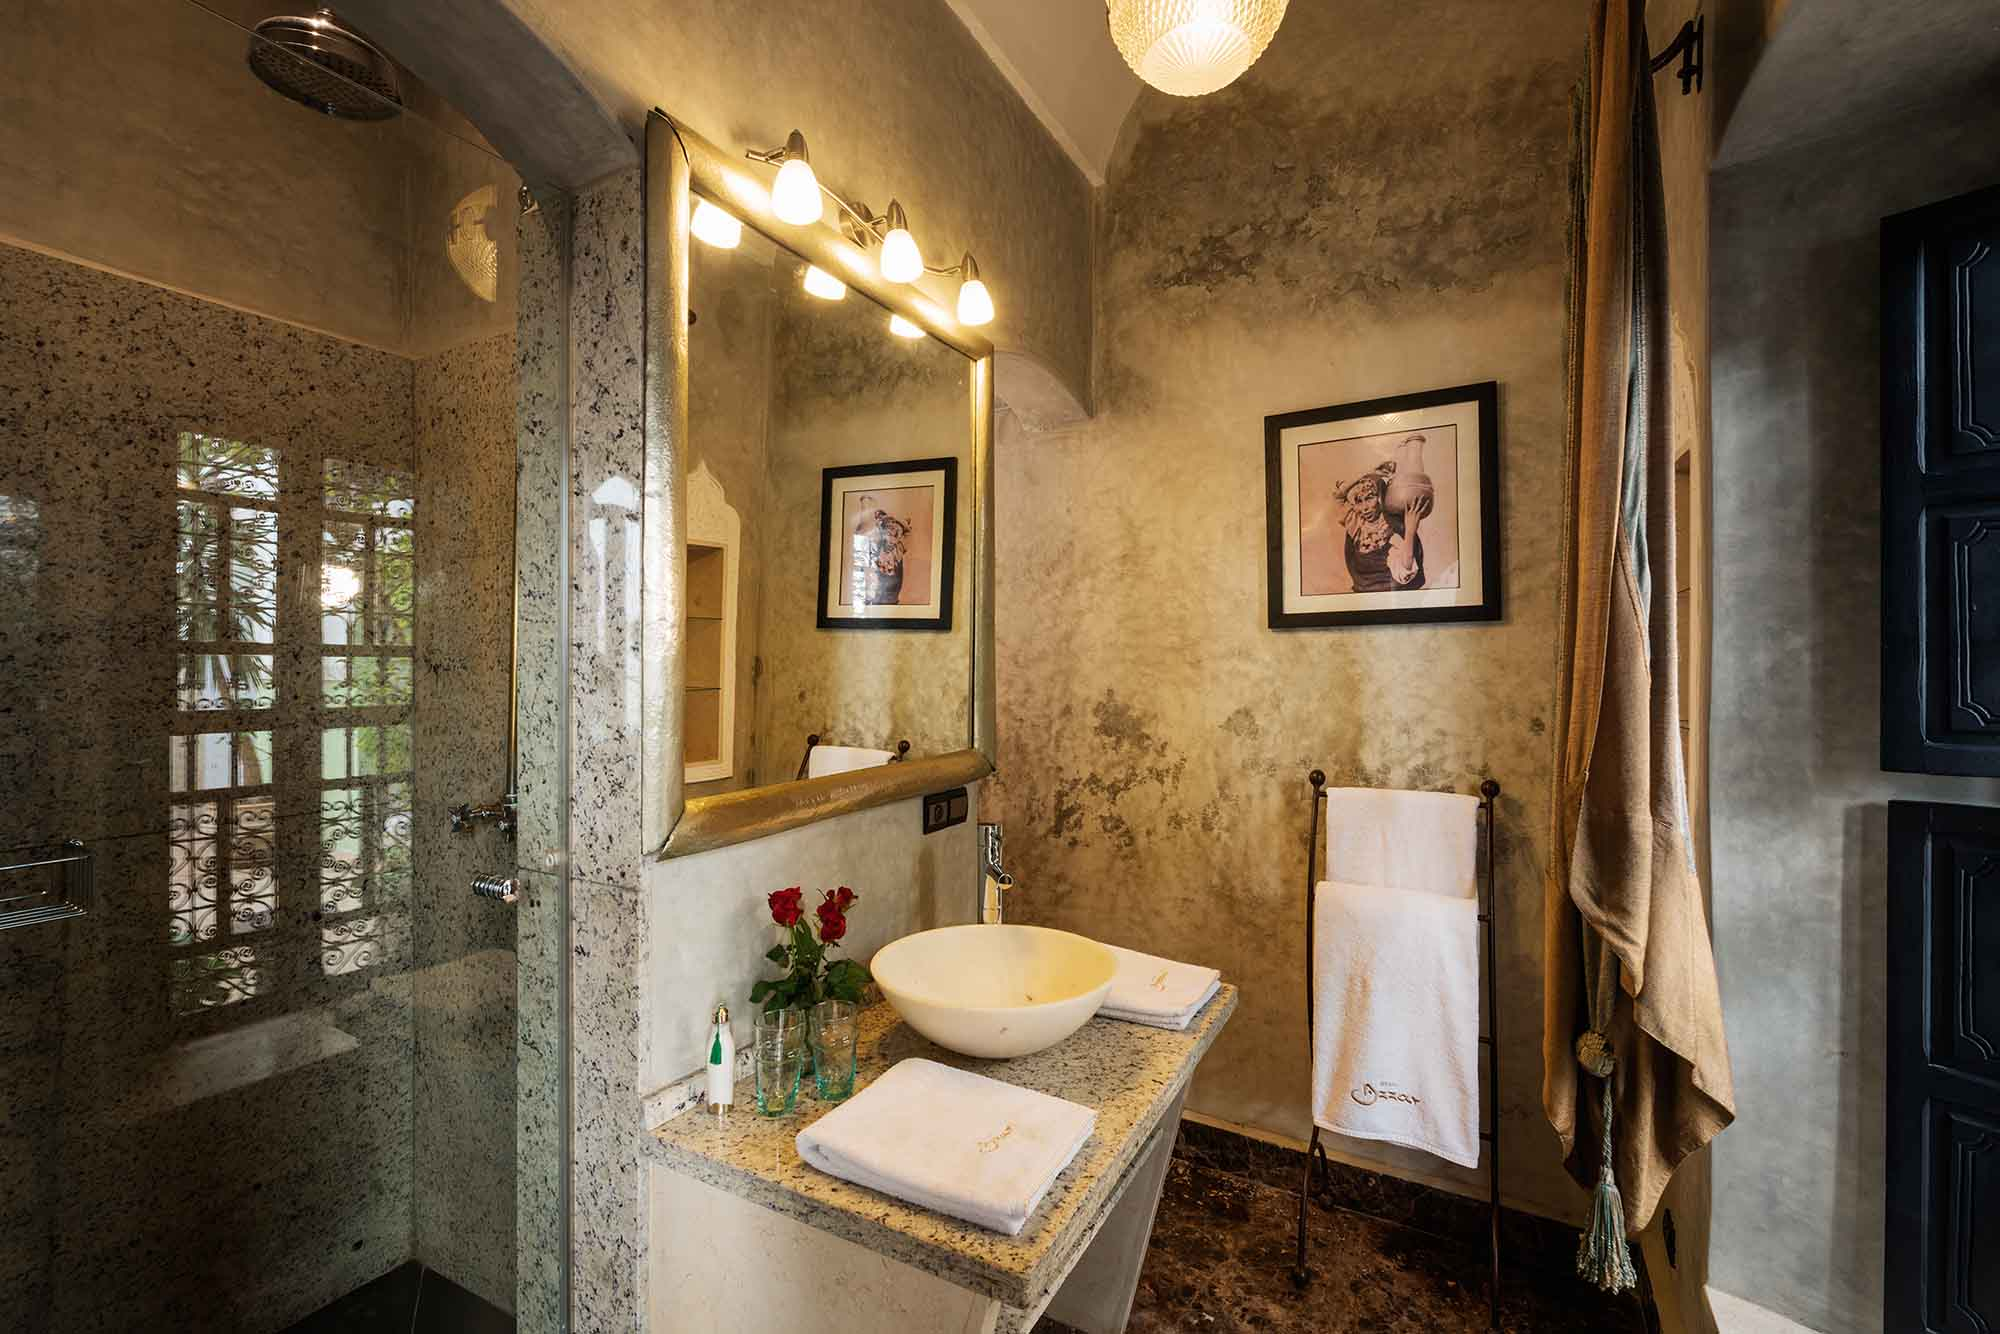 RIAD AZZAR GUEST HOUSE MARRAKECH BATHROOM